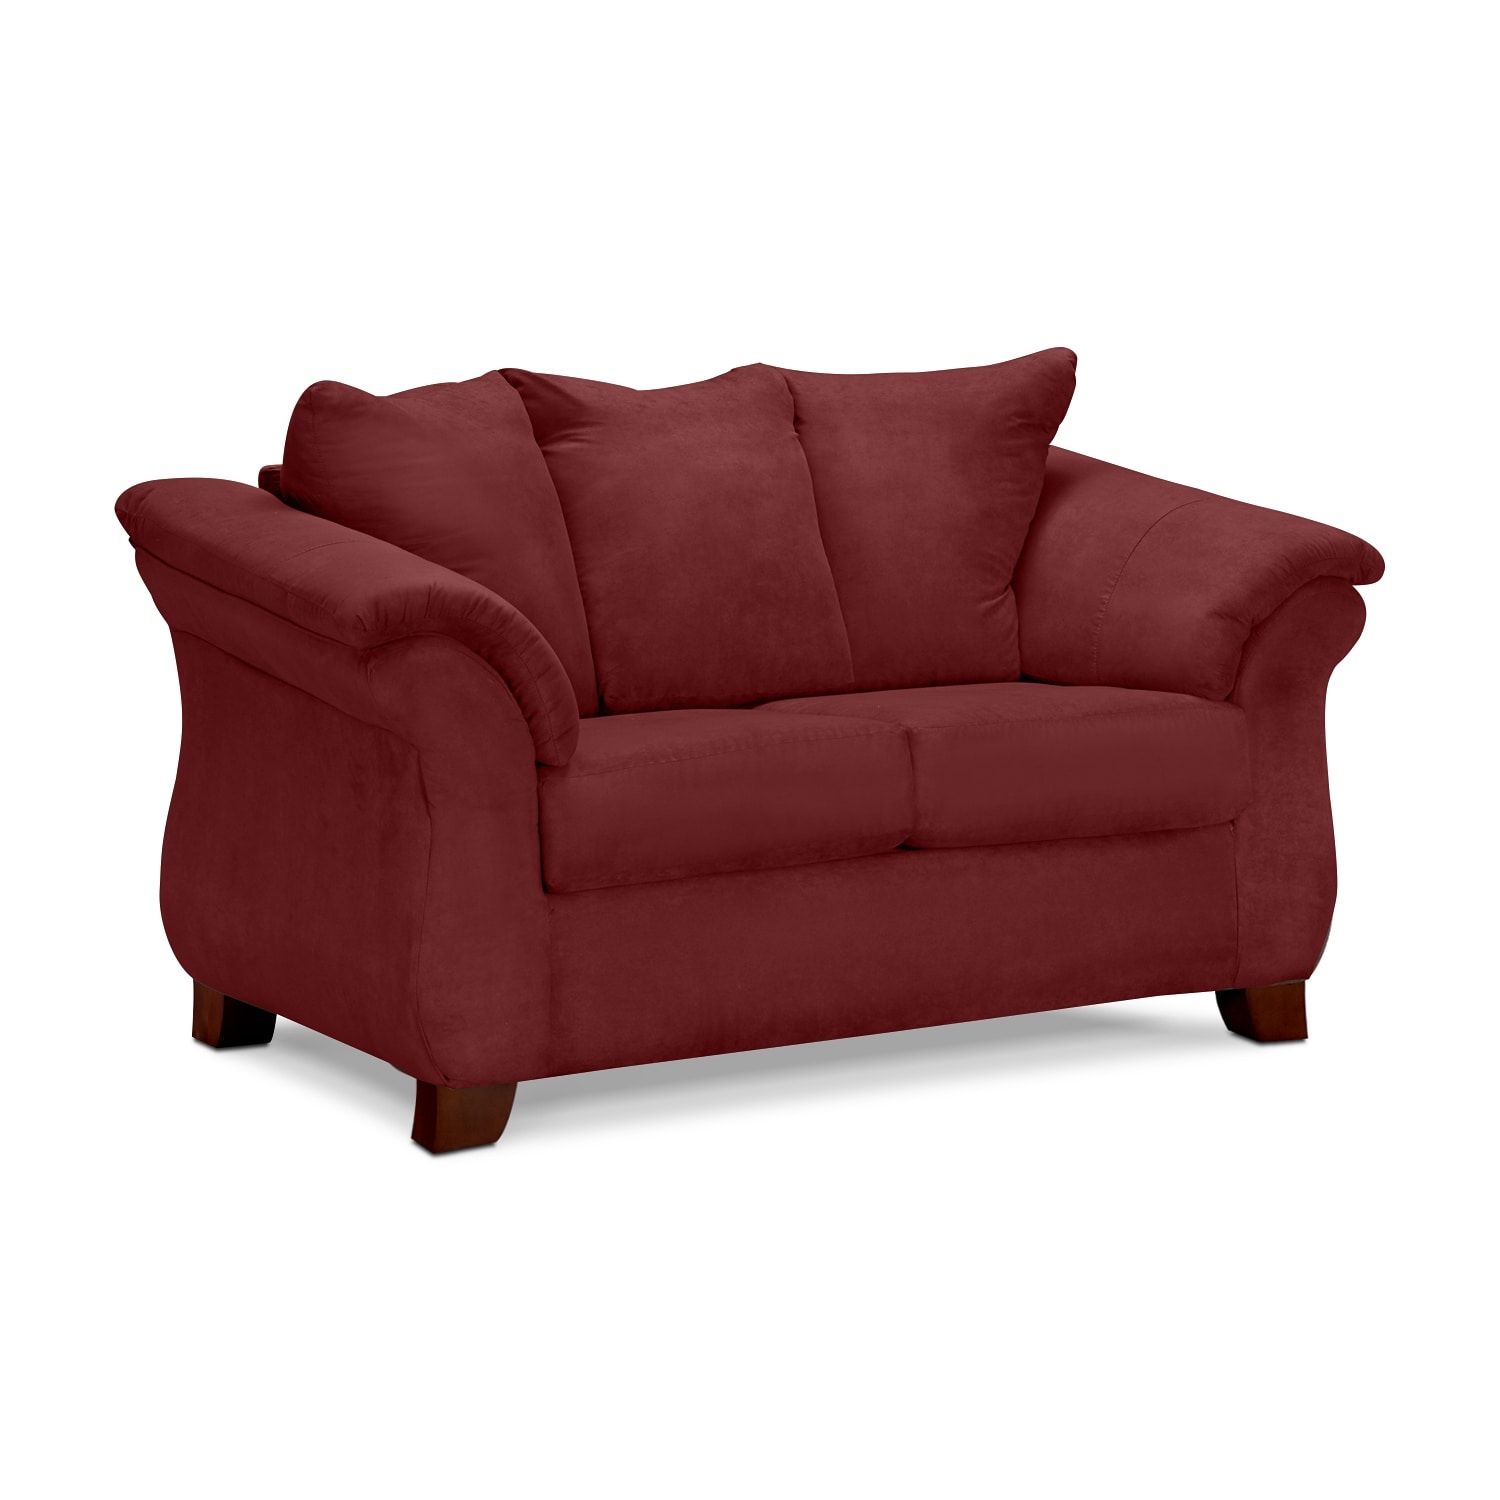 Adrian Sofa Loveseat And Accent Chair Set Red Value